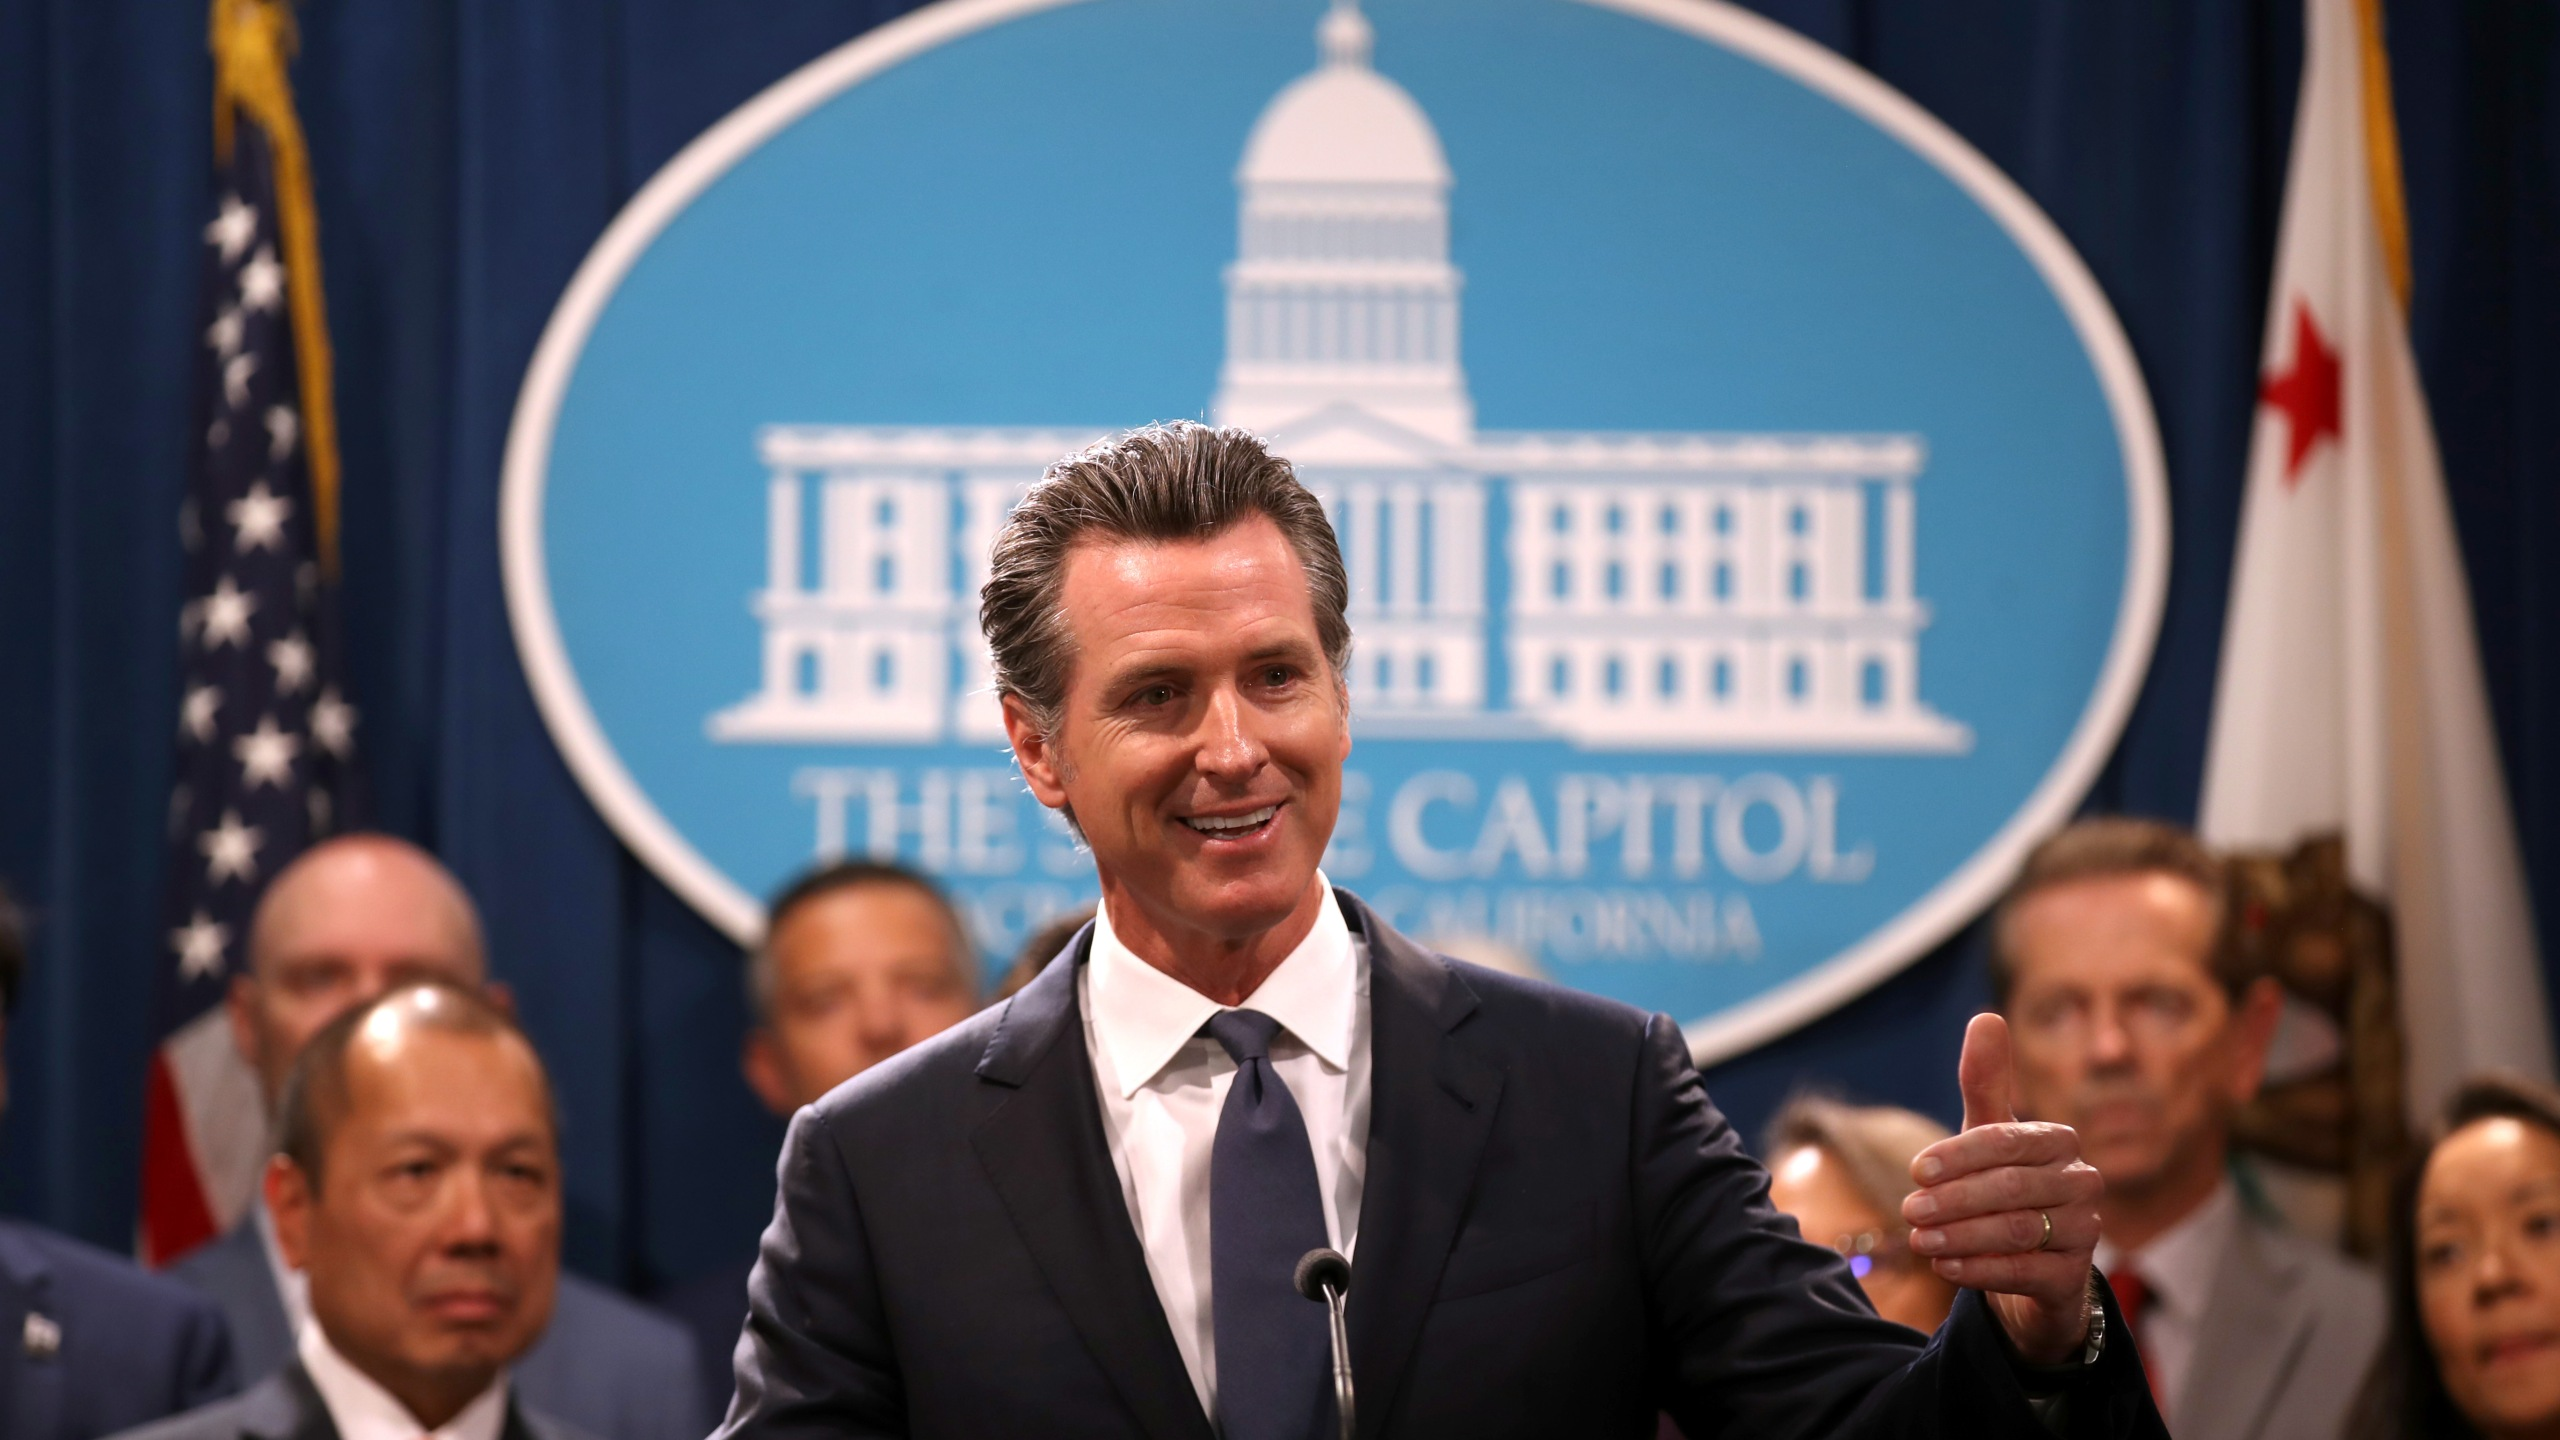 Gov. Gavin Newsom speaks during a news conference at the California State Capitol on Aug. 16, 2019, in Sacramento. (Credit: Justin Sullivan/Getty Images)